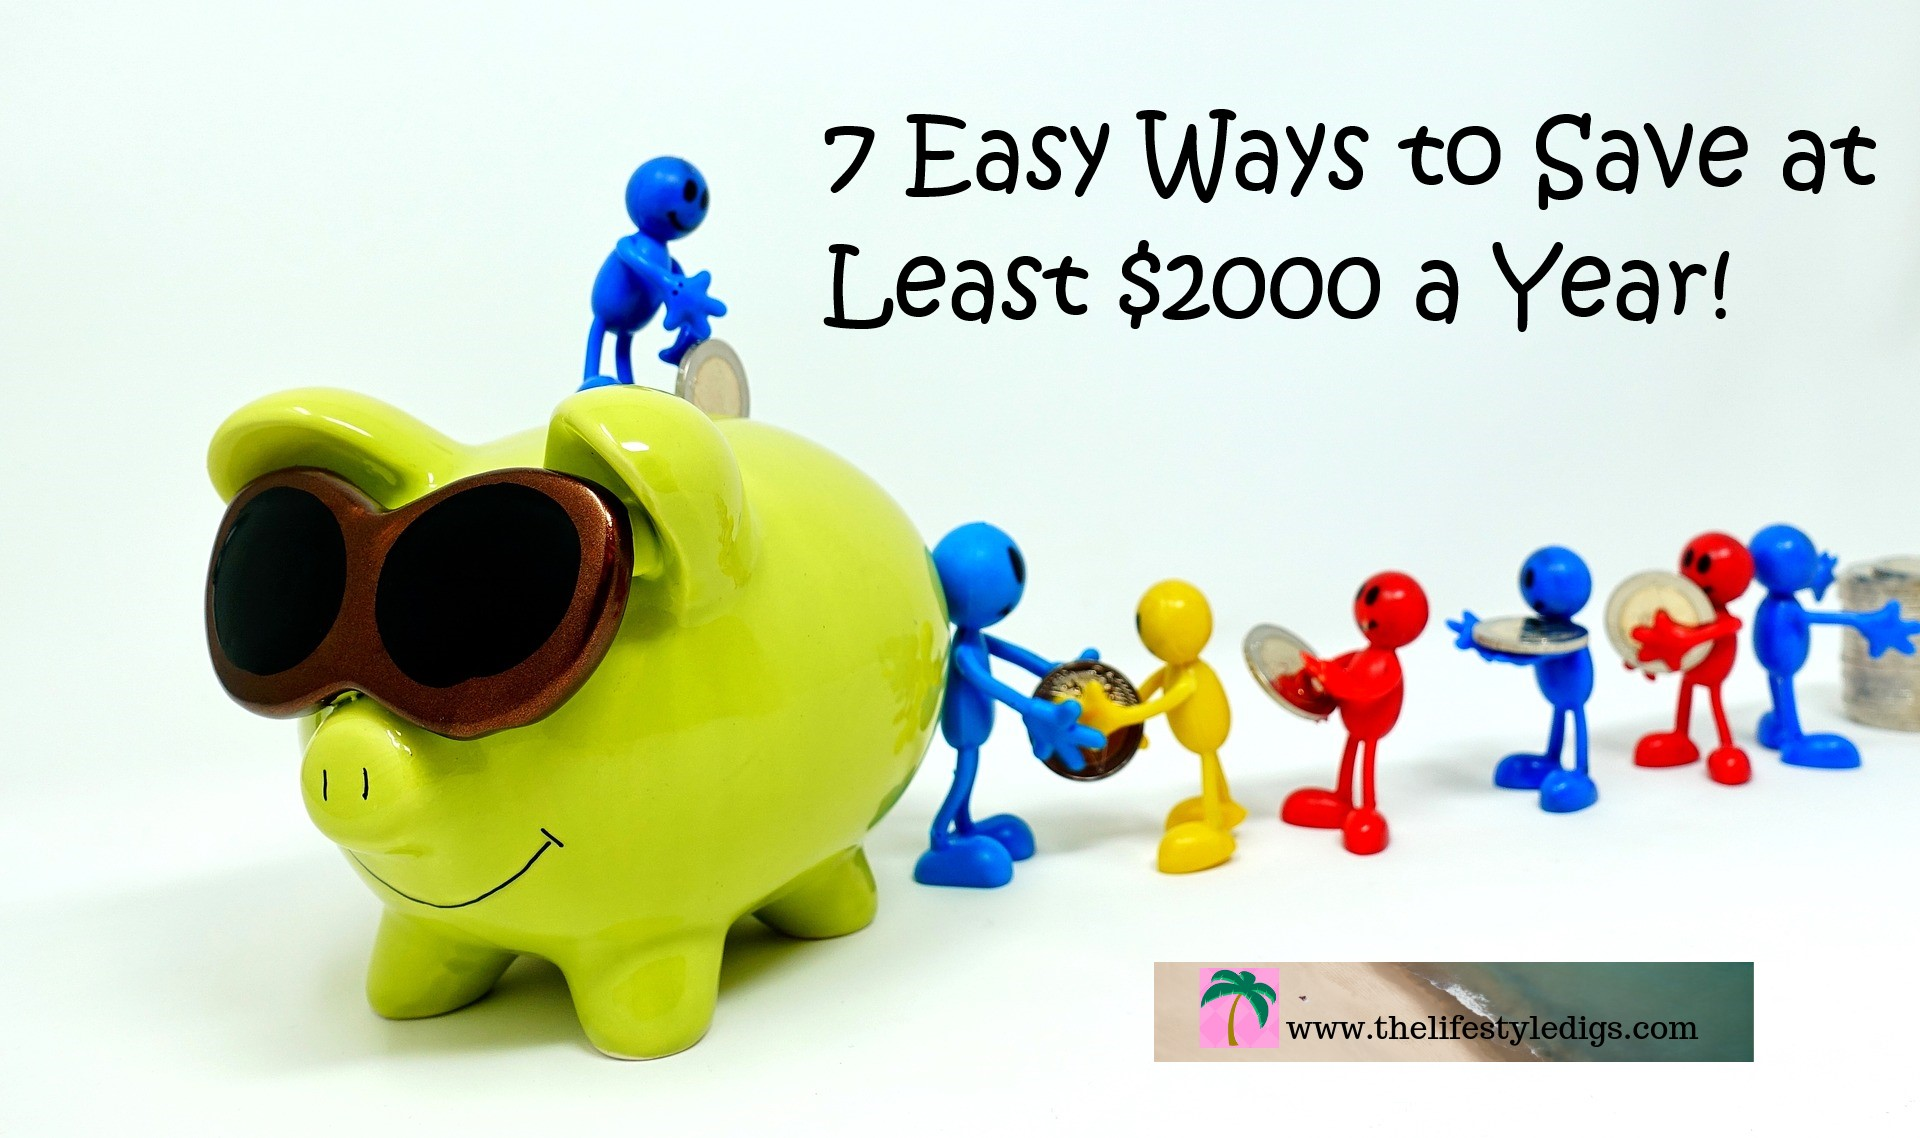 7 Easy Ways to Save at Least $2000 a Year!